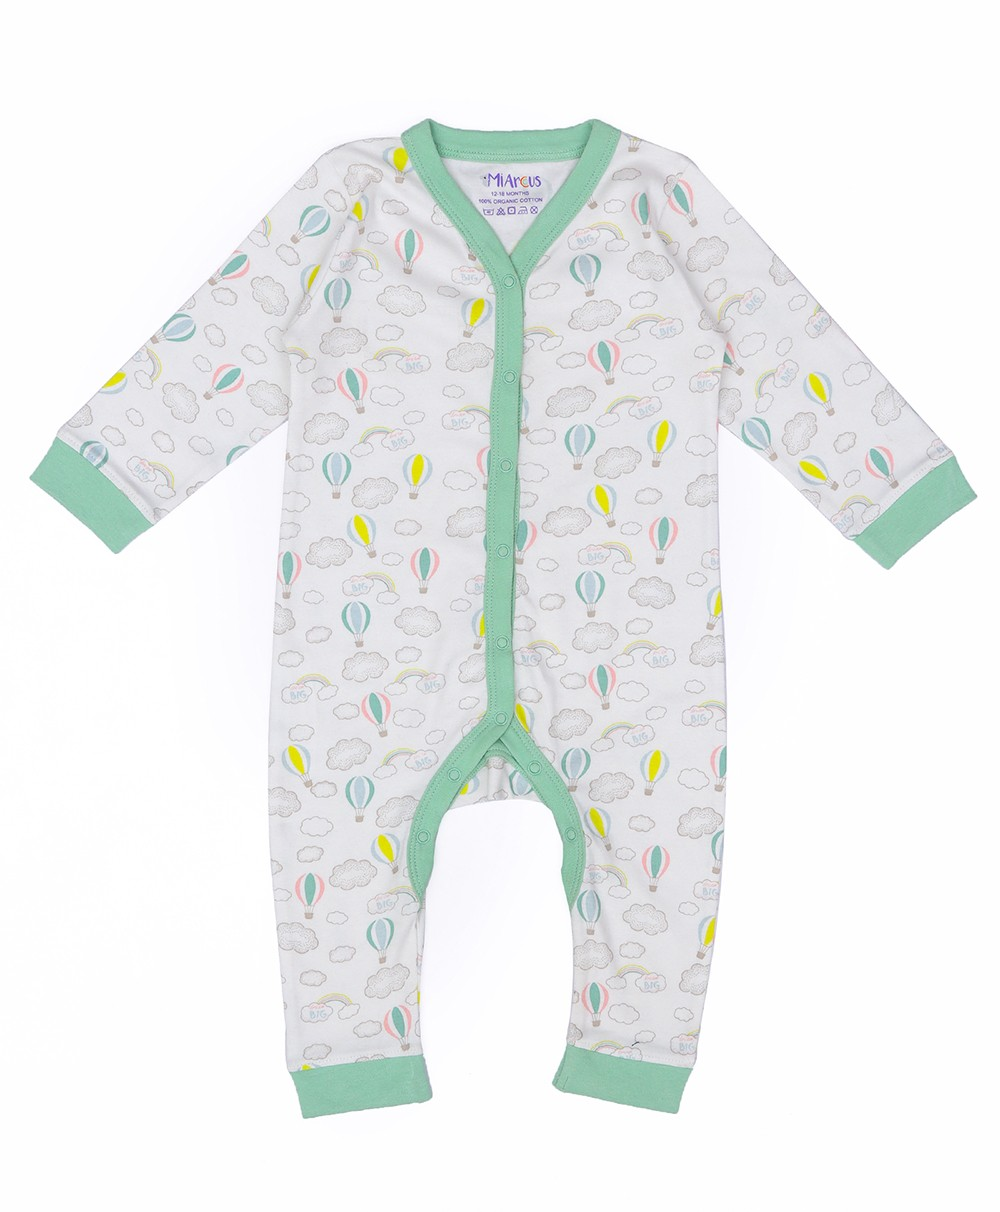 Comfy Knitted Sleep Suit - Arcus (Pack of 2)